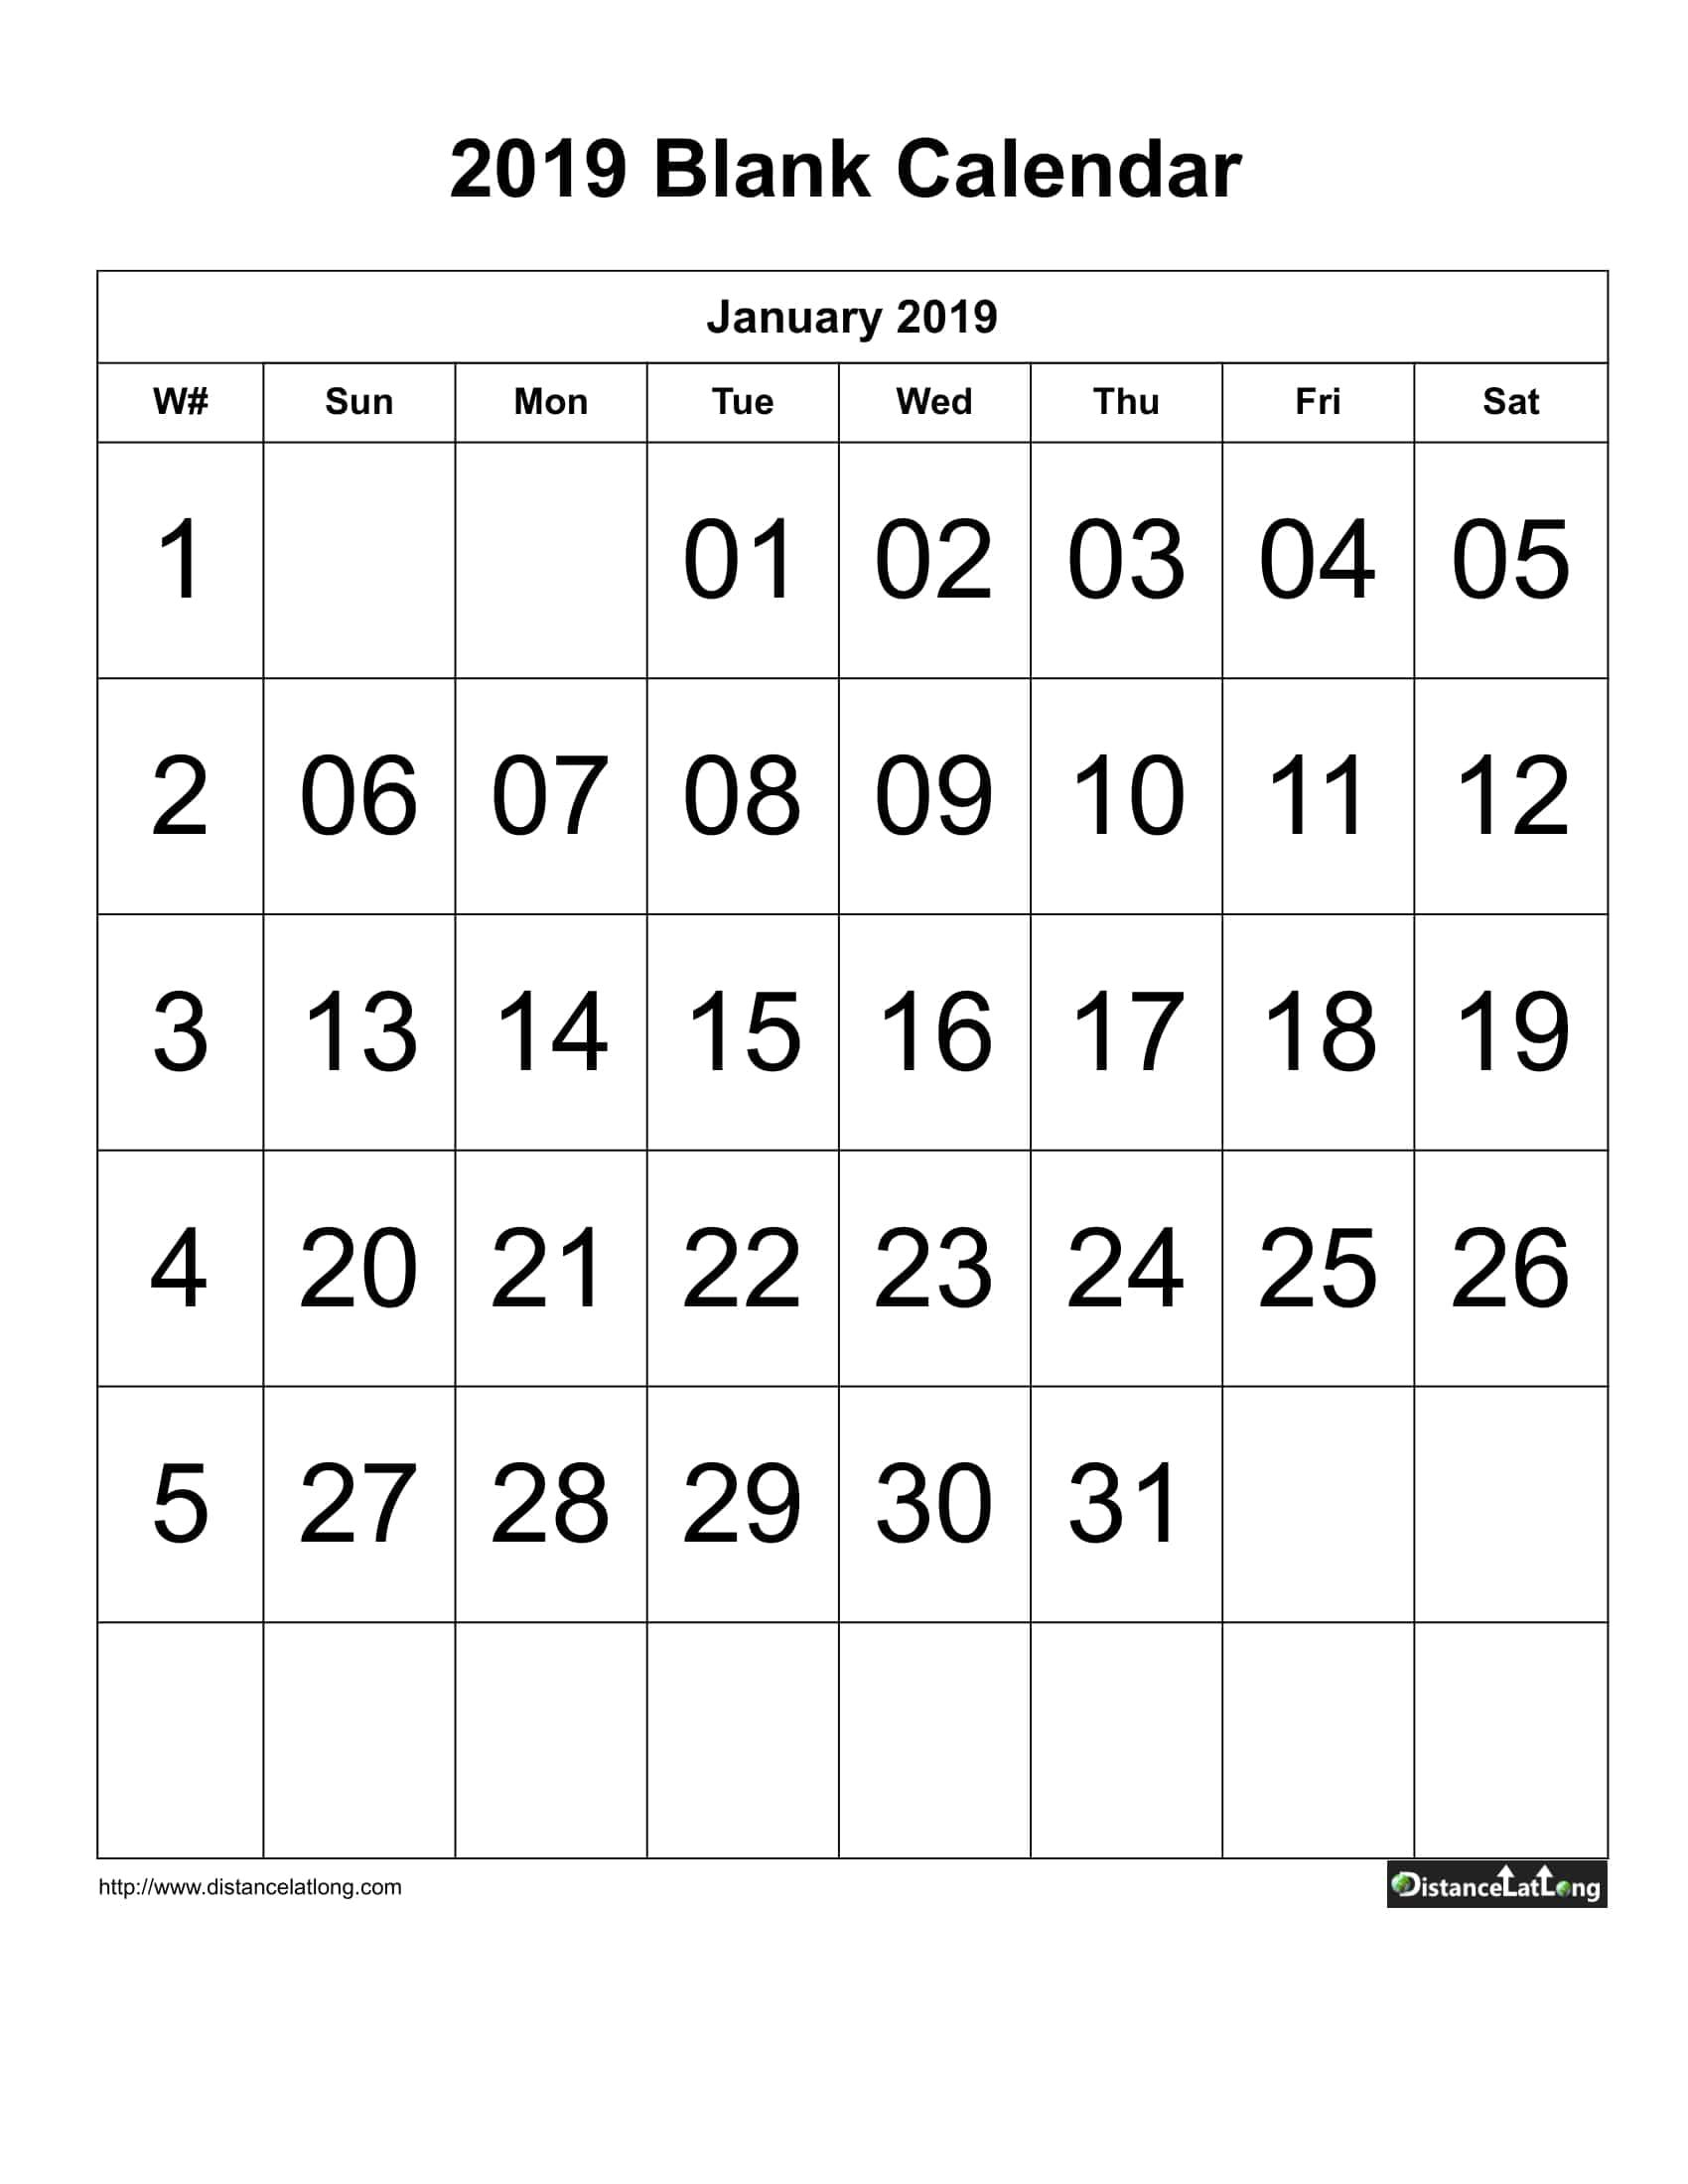 Blank Calendar with large font center align 2019 one month